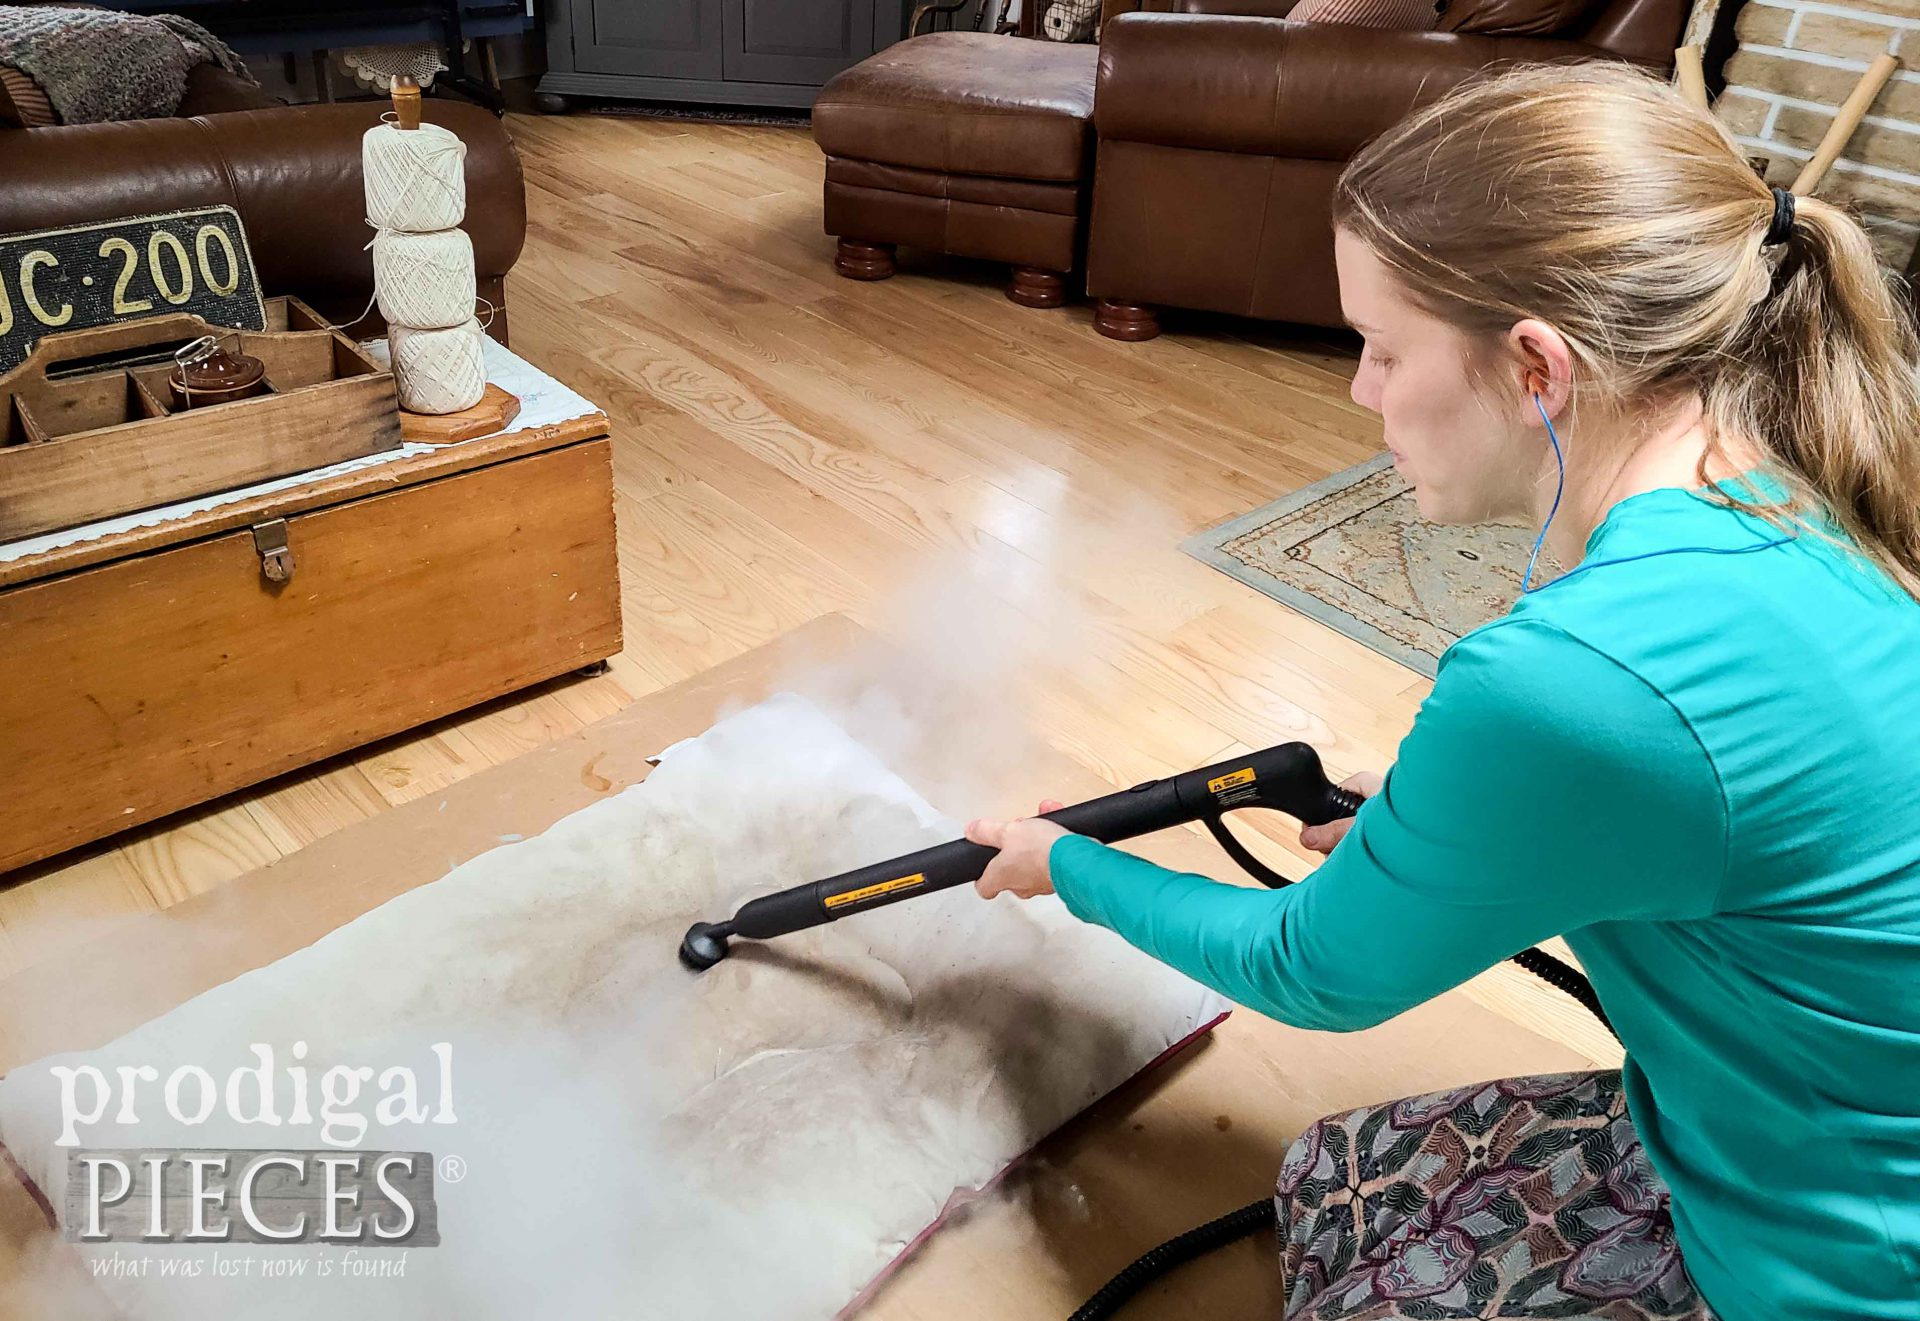 Larissa of Prodigal Pieces Pet Bed Cleaning with the SteamMachine Elite | prodigalpieces.com #prodigalpieces